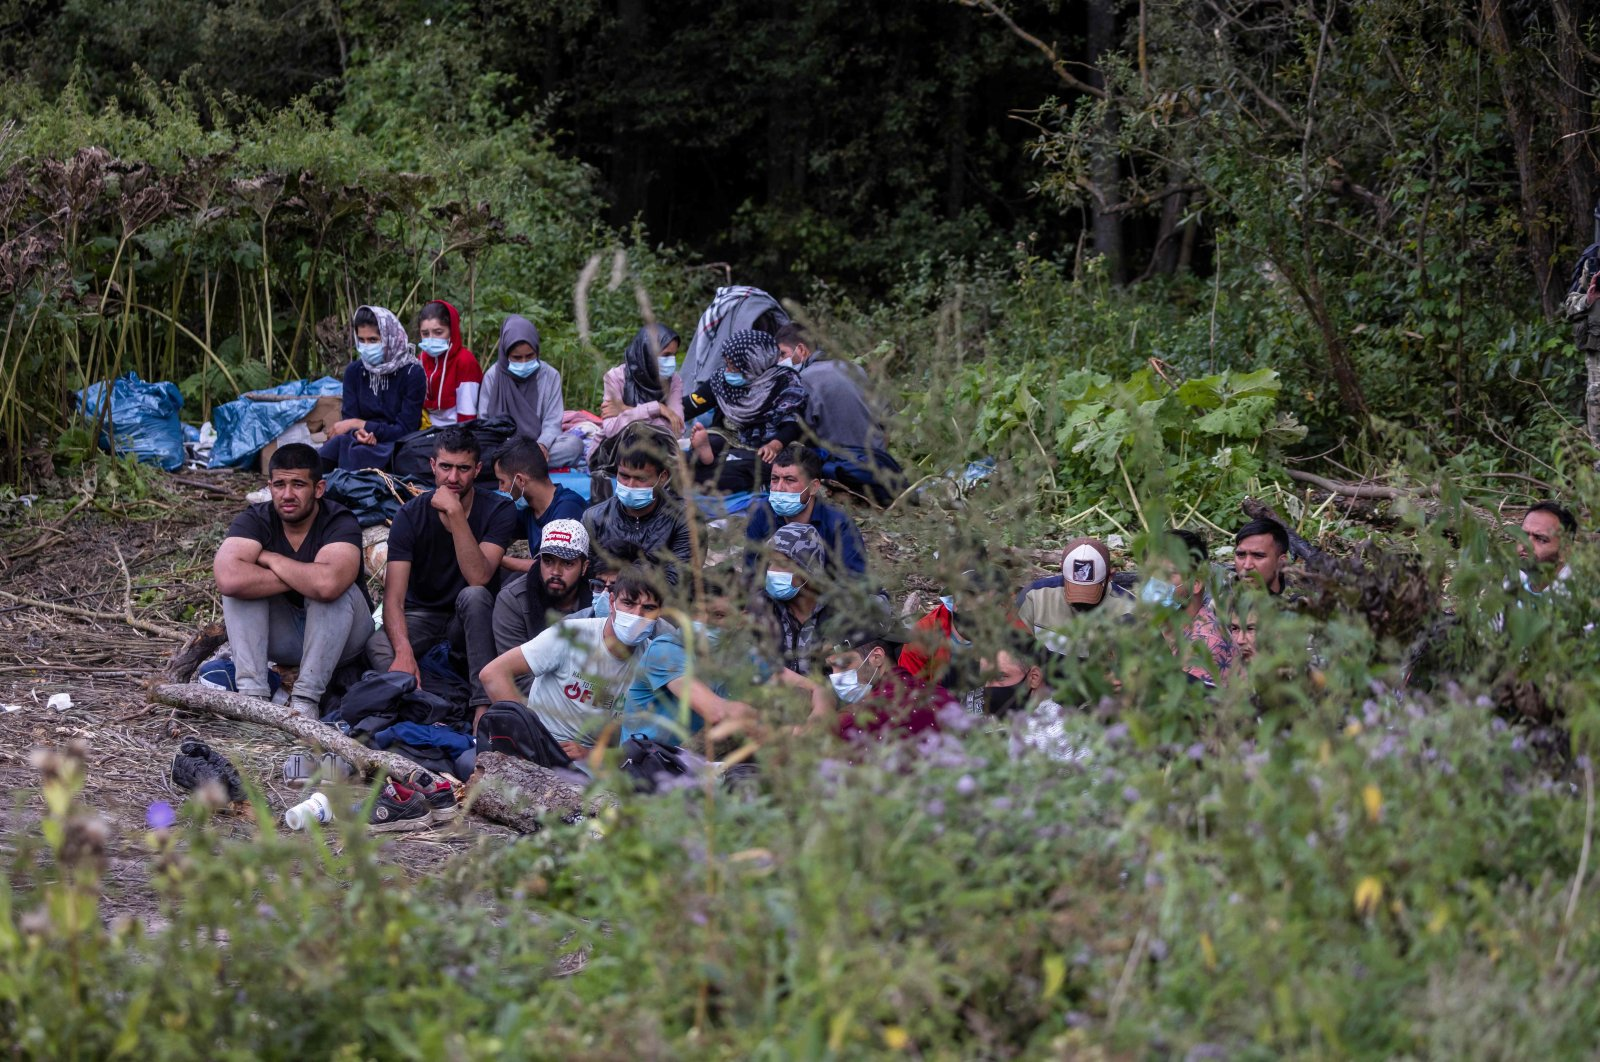 Migrants believed to be from Afghanistan sit on the ground in the small village of Usnarz Gorny near Bialystok, northeastern Poland, located close to the border with Belarus, Aug. 20, 2021. (AFP Photo)